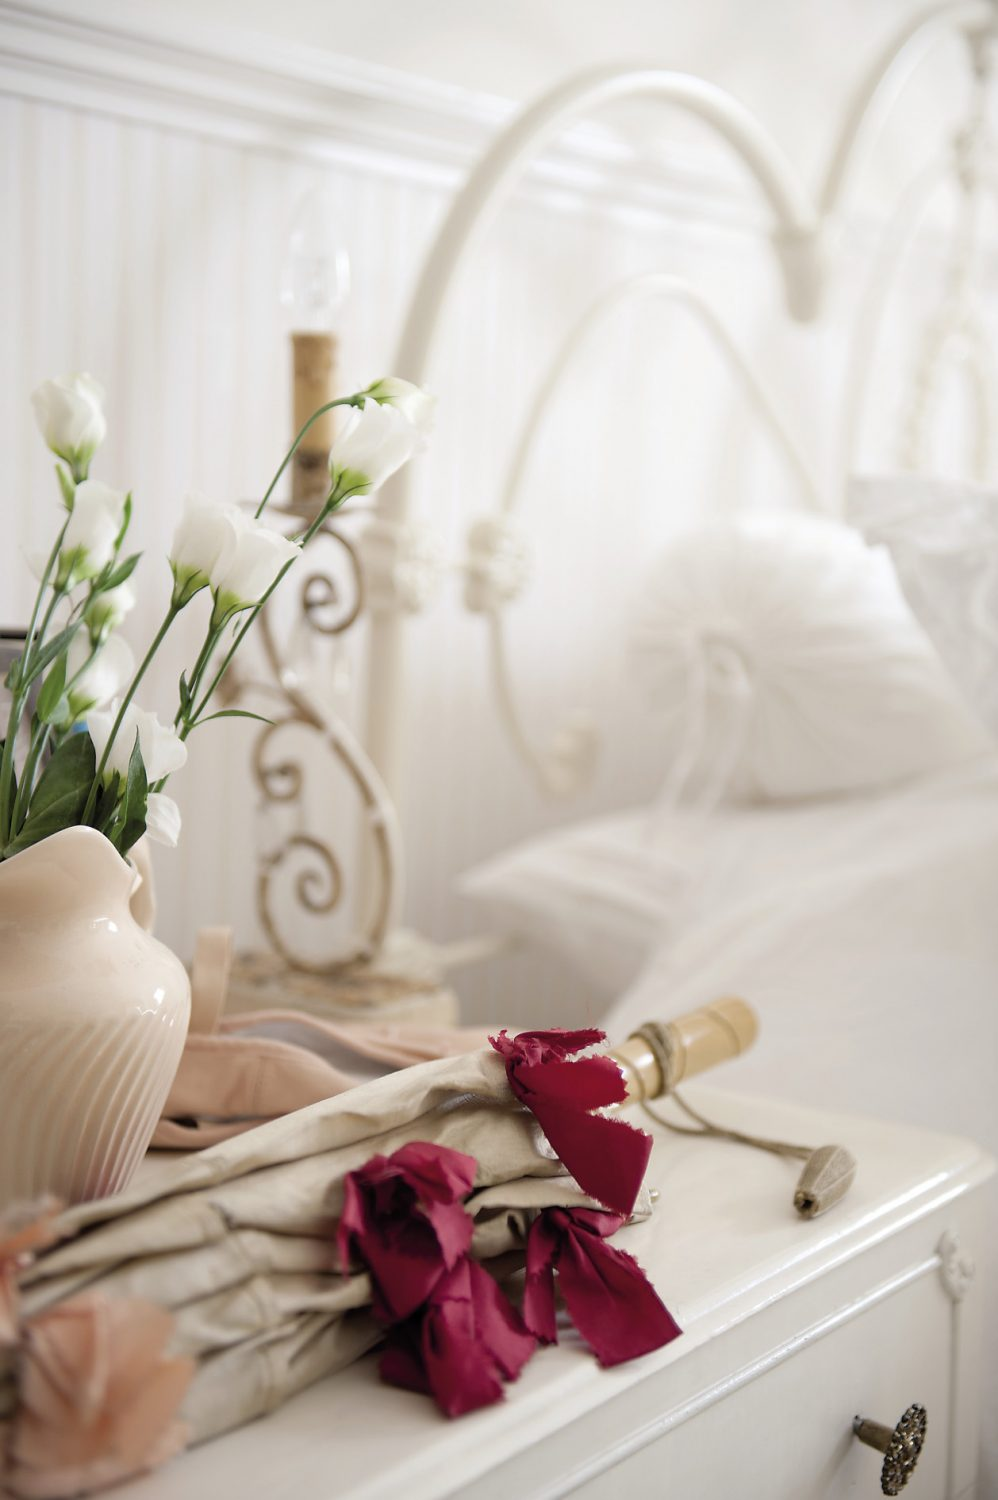 Anastasia's wrought iron bed is dressed with antique embroidered linen as well as a cable knit blanket from Ralph Lauren and a patched sheepskin throw. An antique parasol and ballet shoes rest on the bedside table